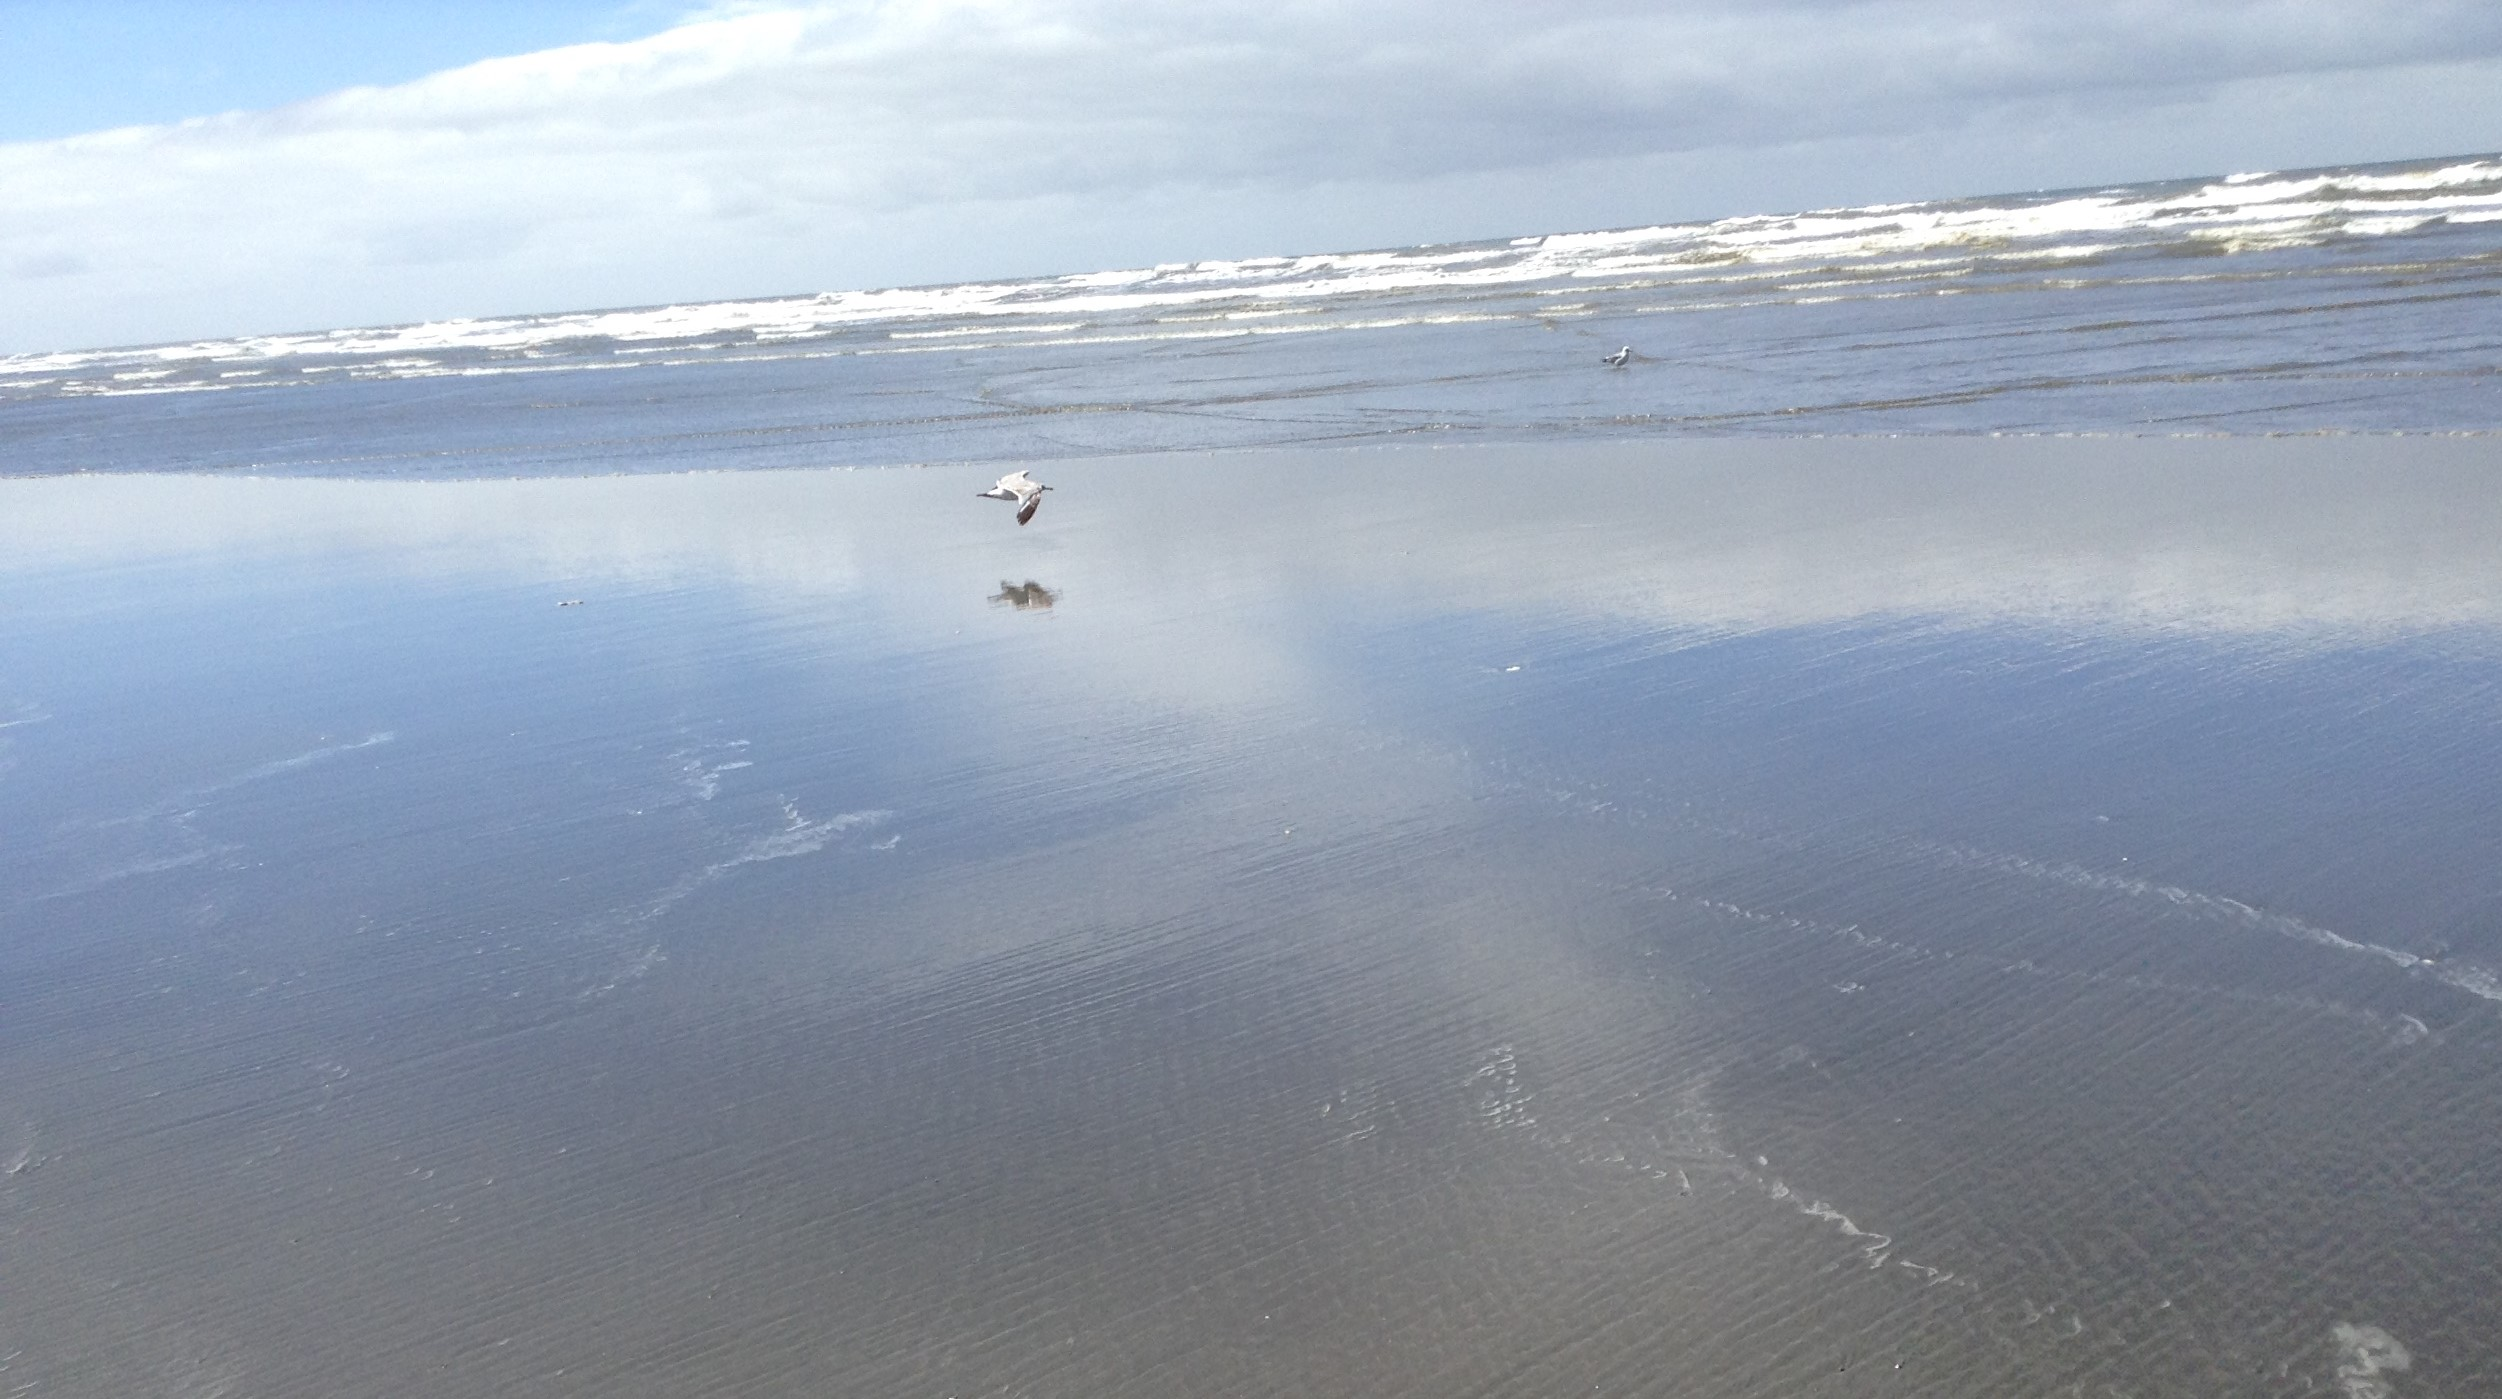 Seagulls enjoying a beautiful day on the Pacific Ocean in Ocean Shores, Washington. #graysharborbeaches #beachscene